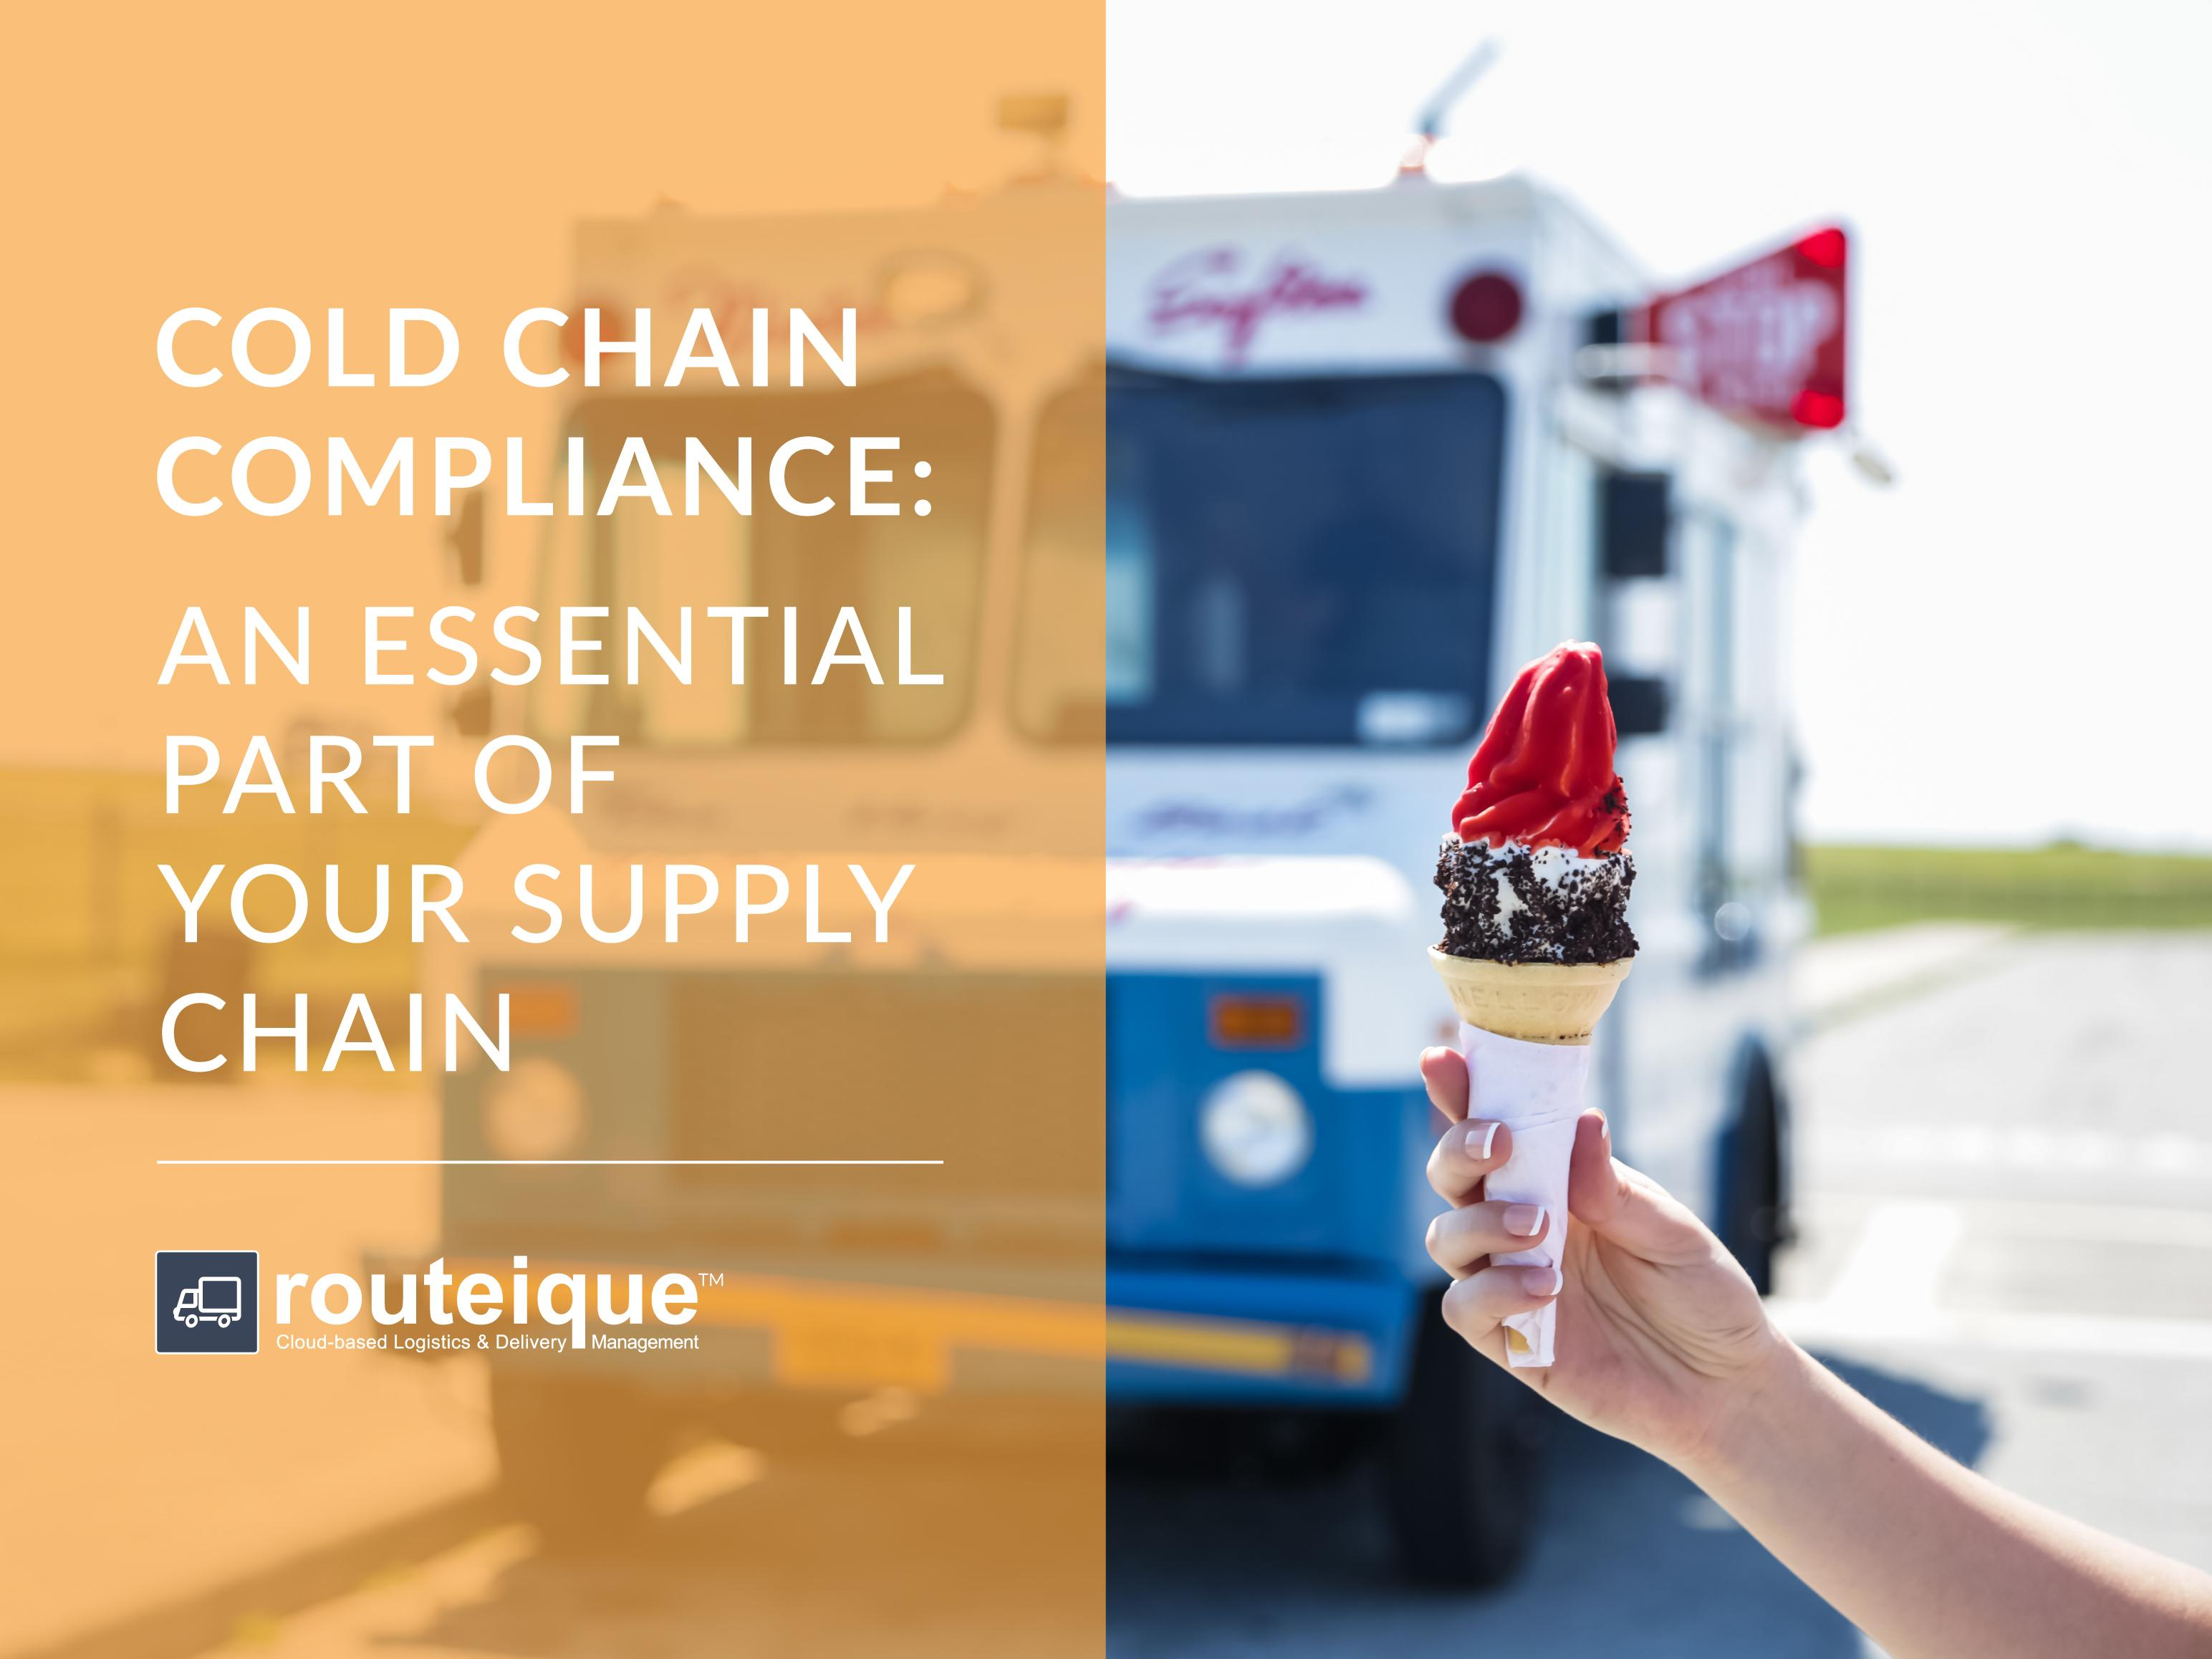 Cold Chain Compliance Blog